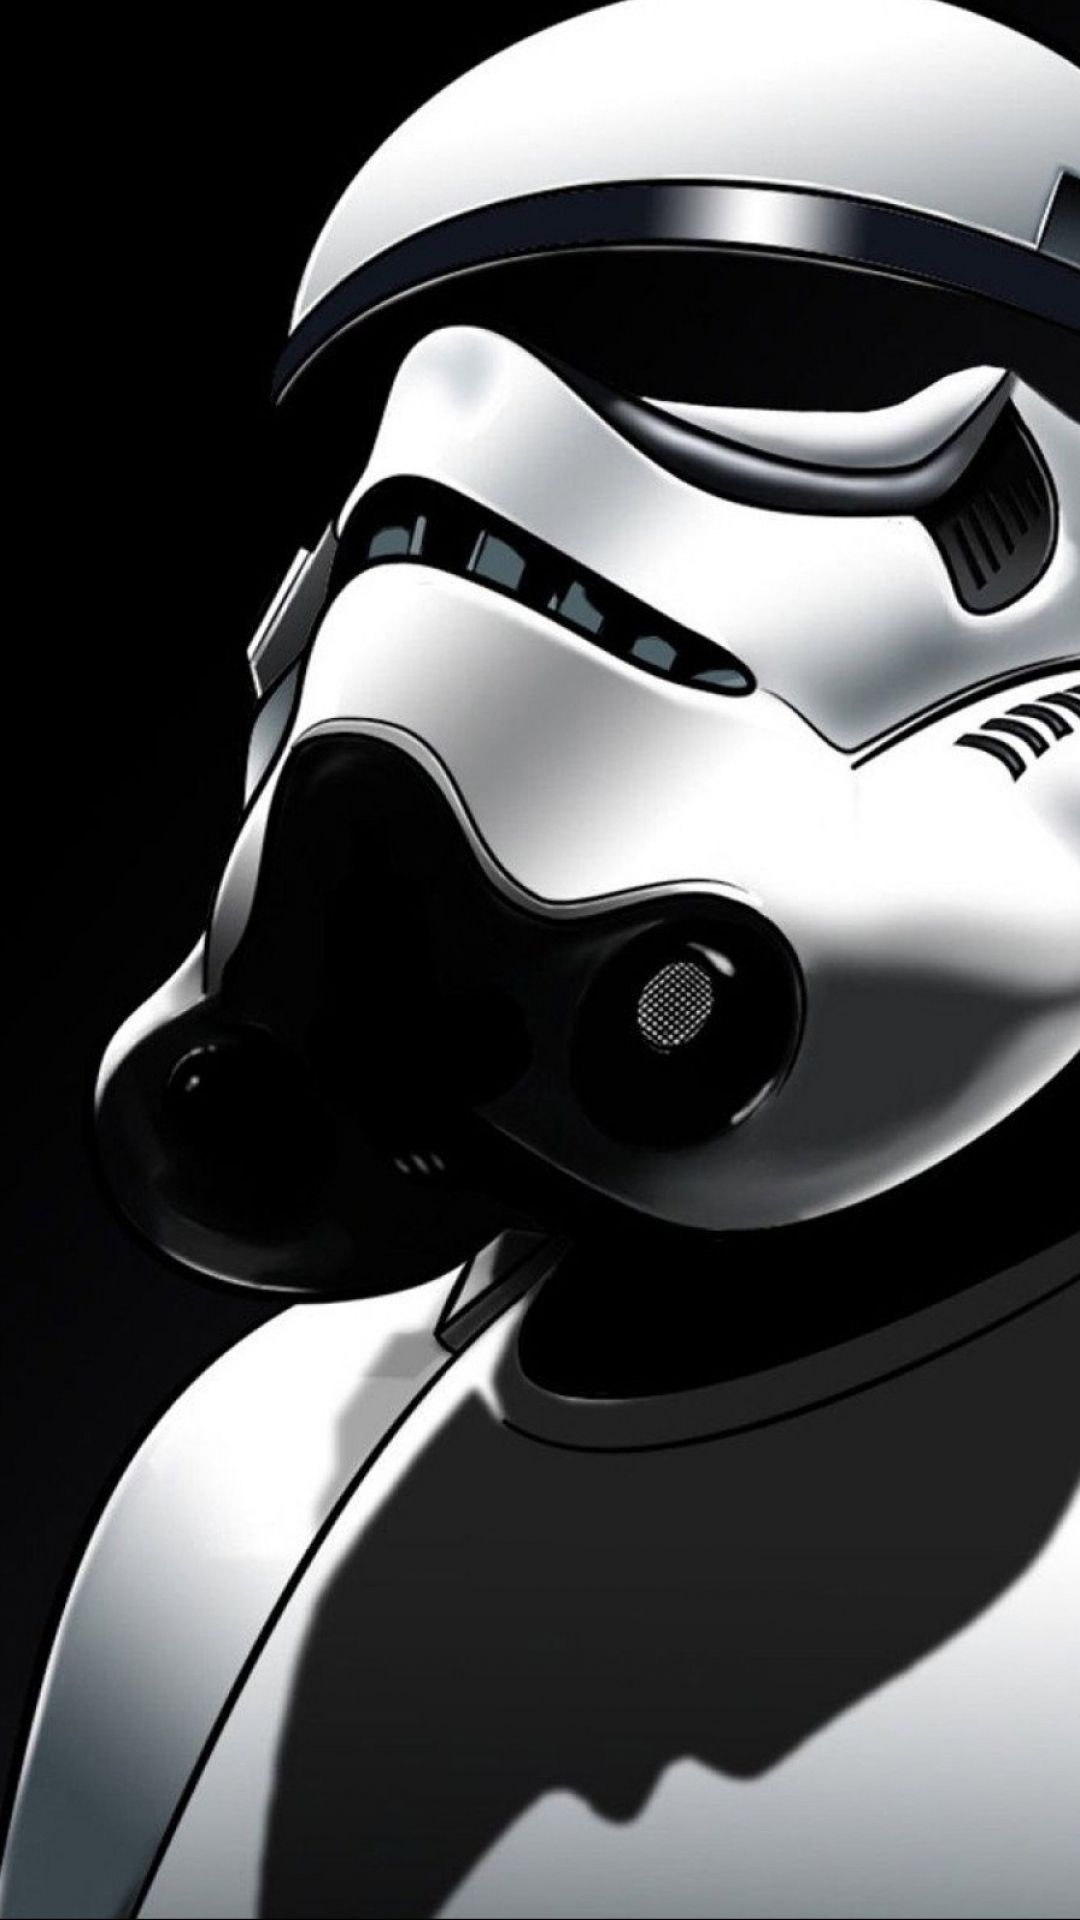 Star Wars Iphone 7 Wallpapers Top Free Star Wars Iphone 7 Backgrounds Wallpaperaccess